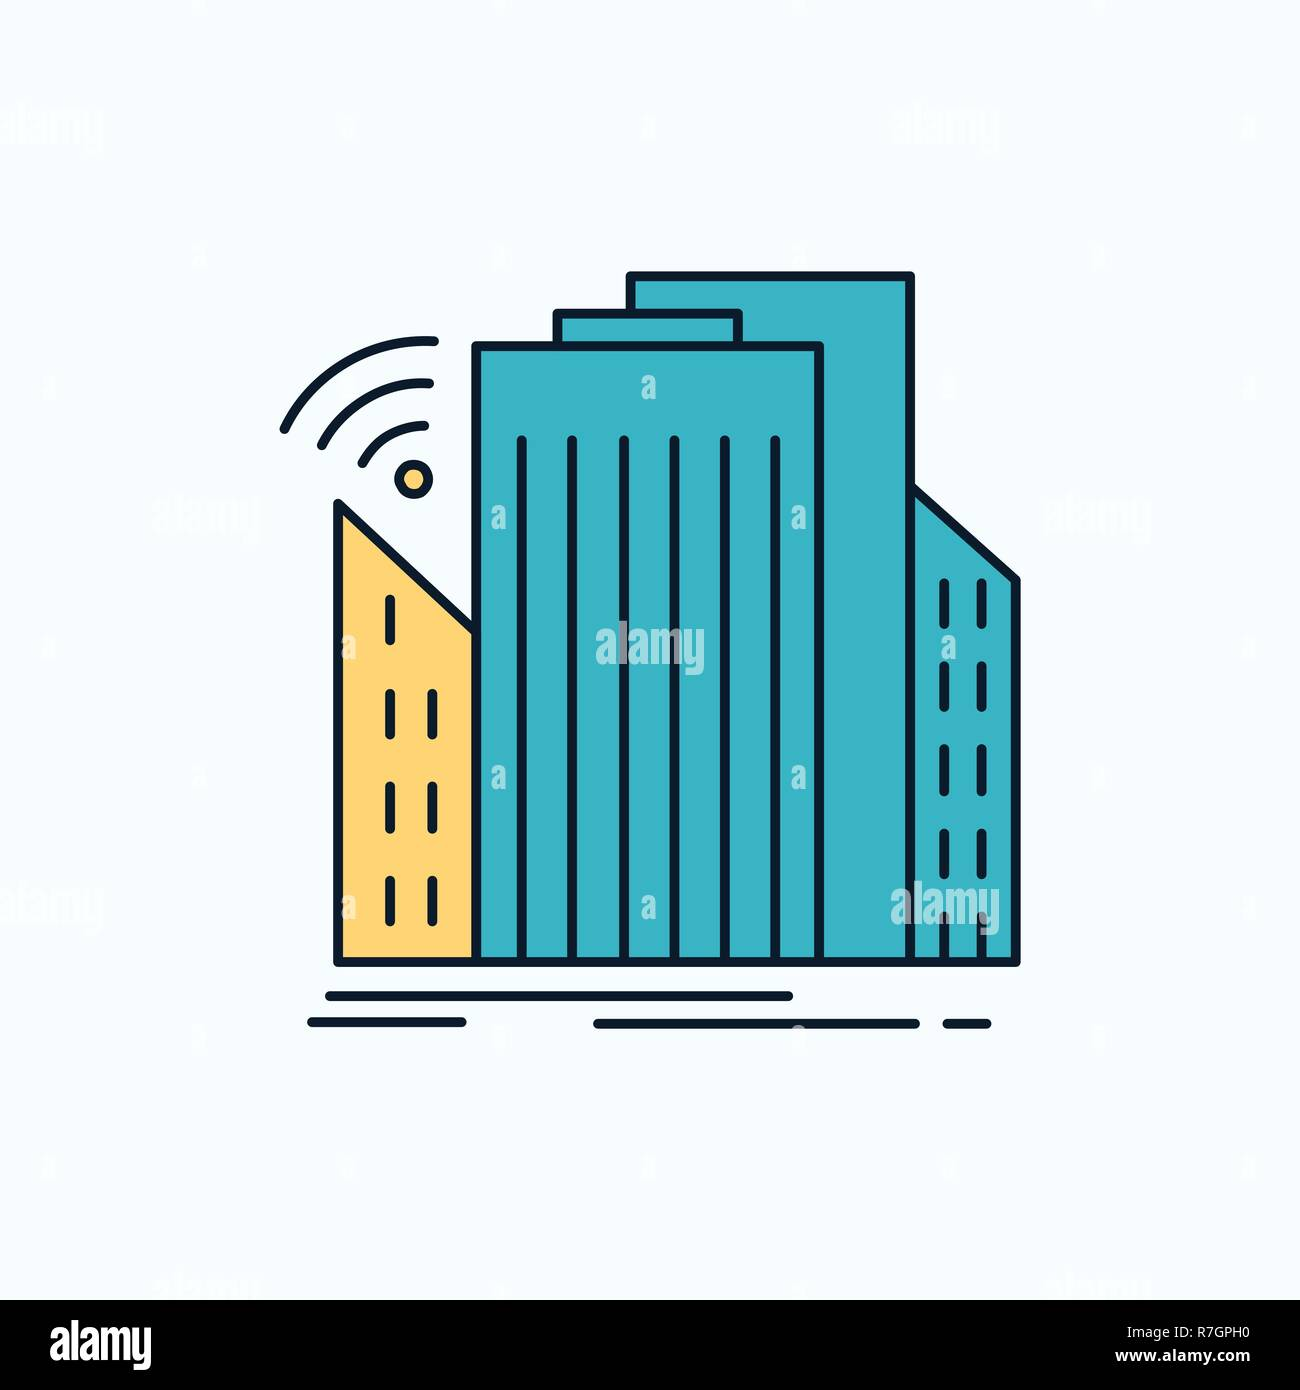 Buildings, city, sensor, smart, urban Flat Icon. green and Yellow sign and symbols for website and Mobile appliation. vector illustration - Stock Vector